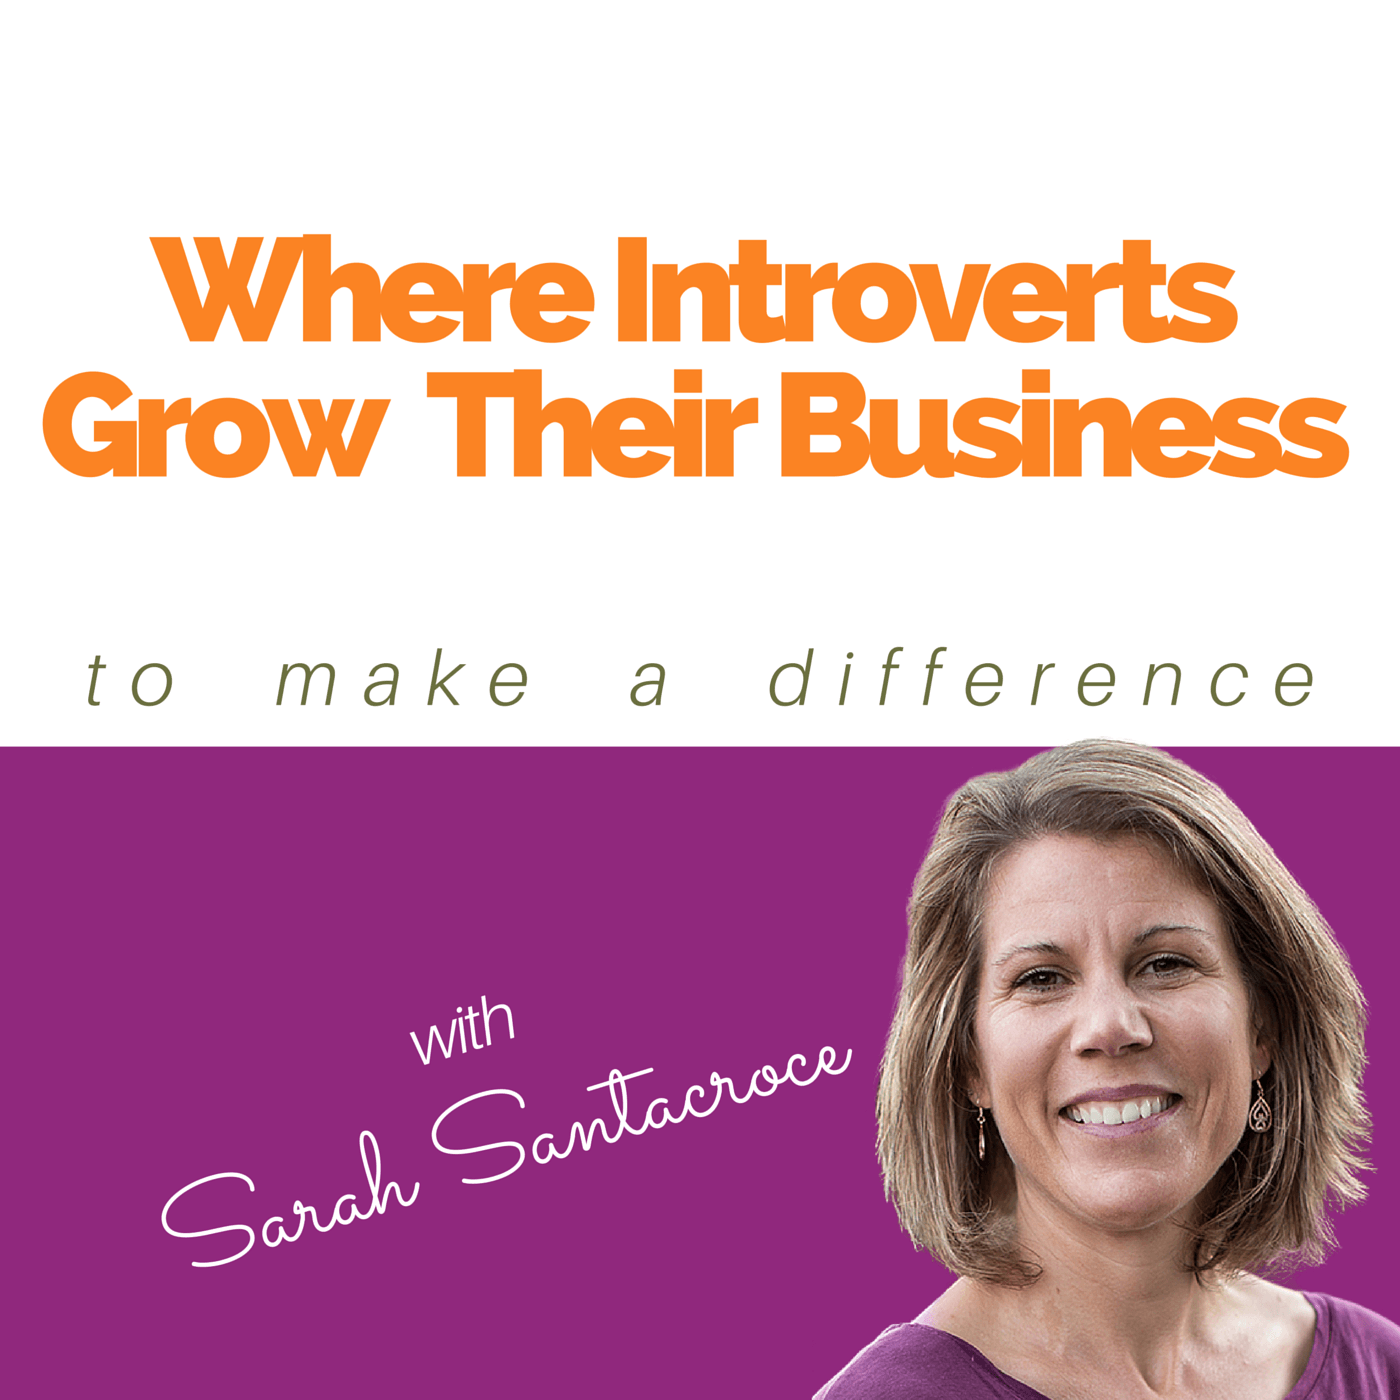 Muse 8: The Creative Introvert: How To Build a Business You Love On Your Terms